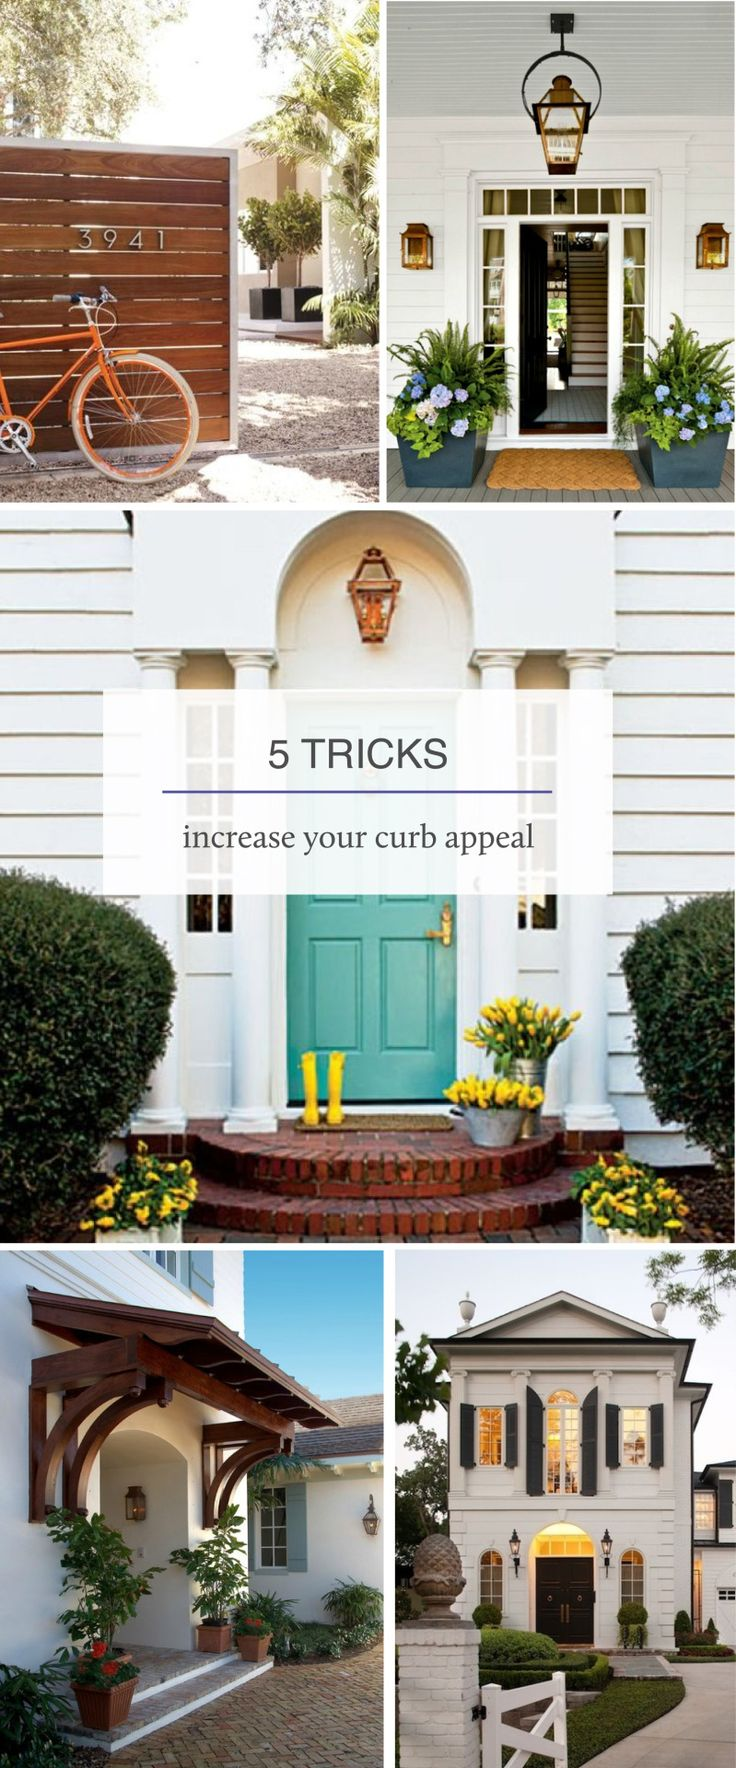 206 best images about curbscaping curb appeal with flowers gardens on pinterest front yards Home selling four diy tricks to maximize the curb appeal